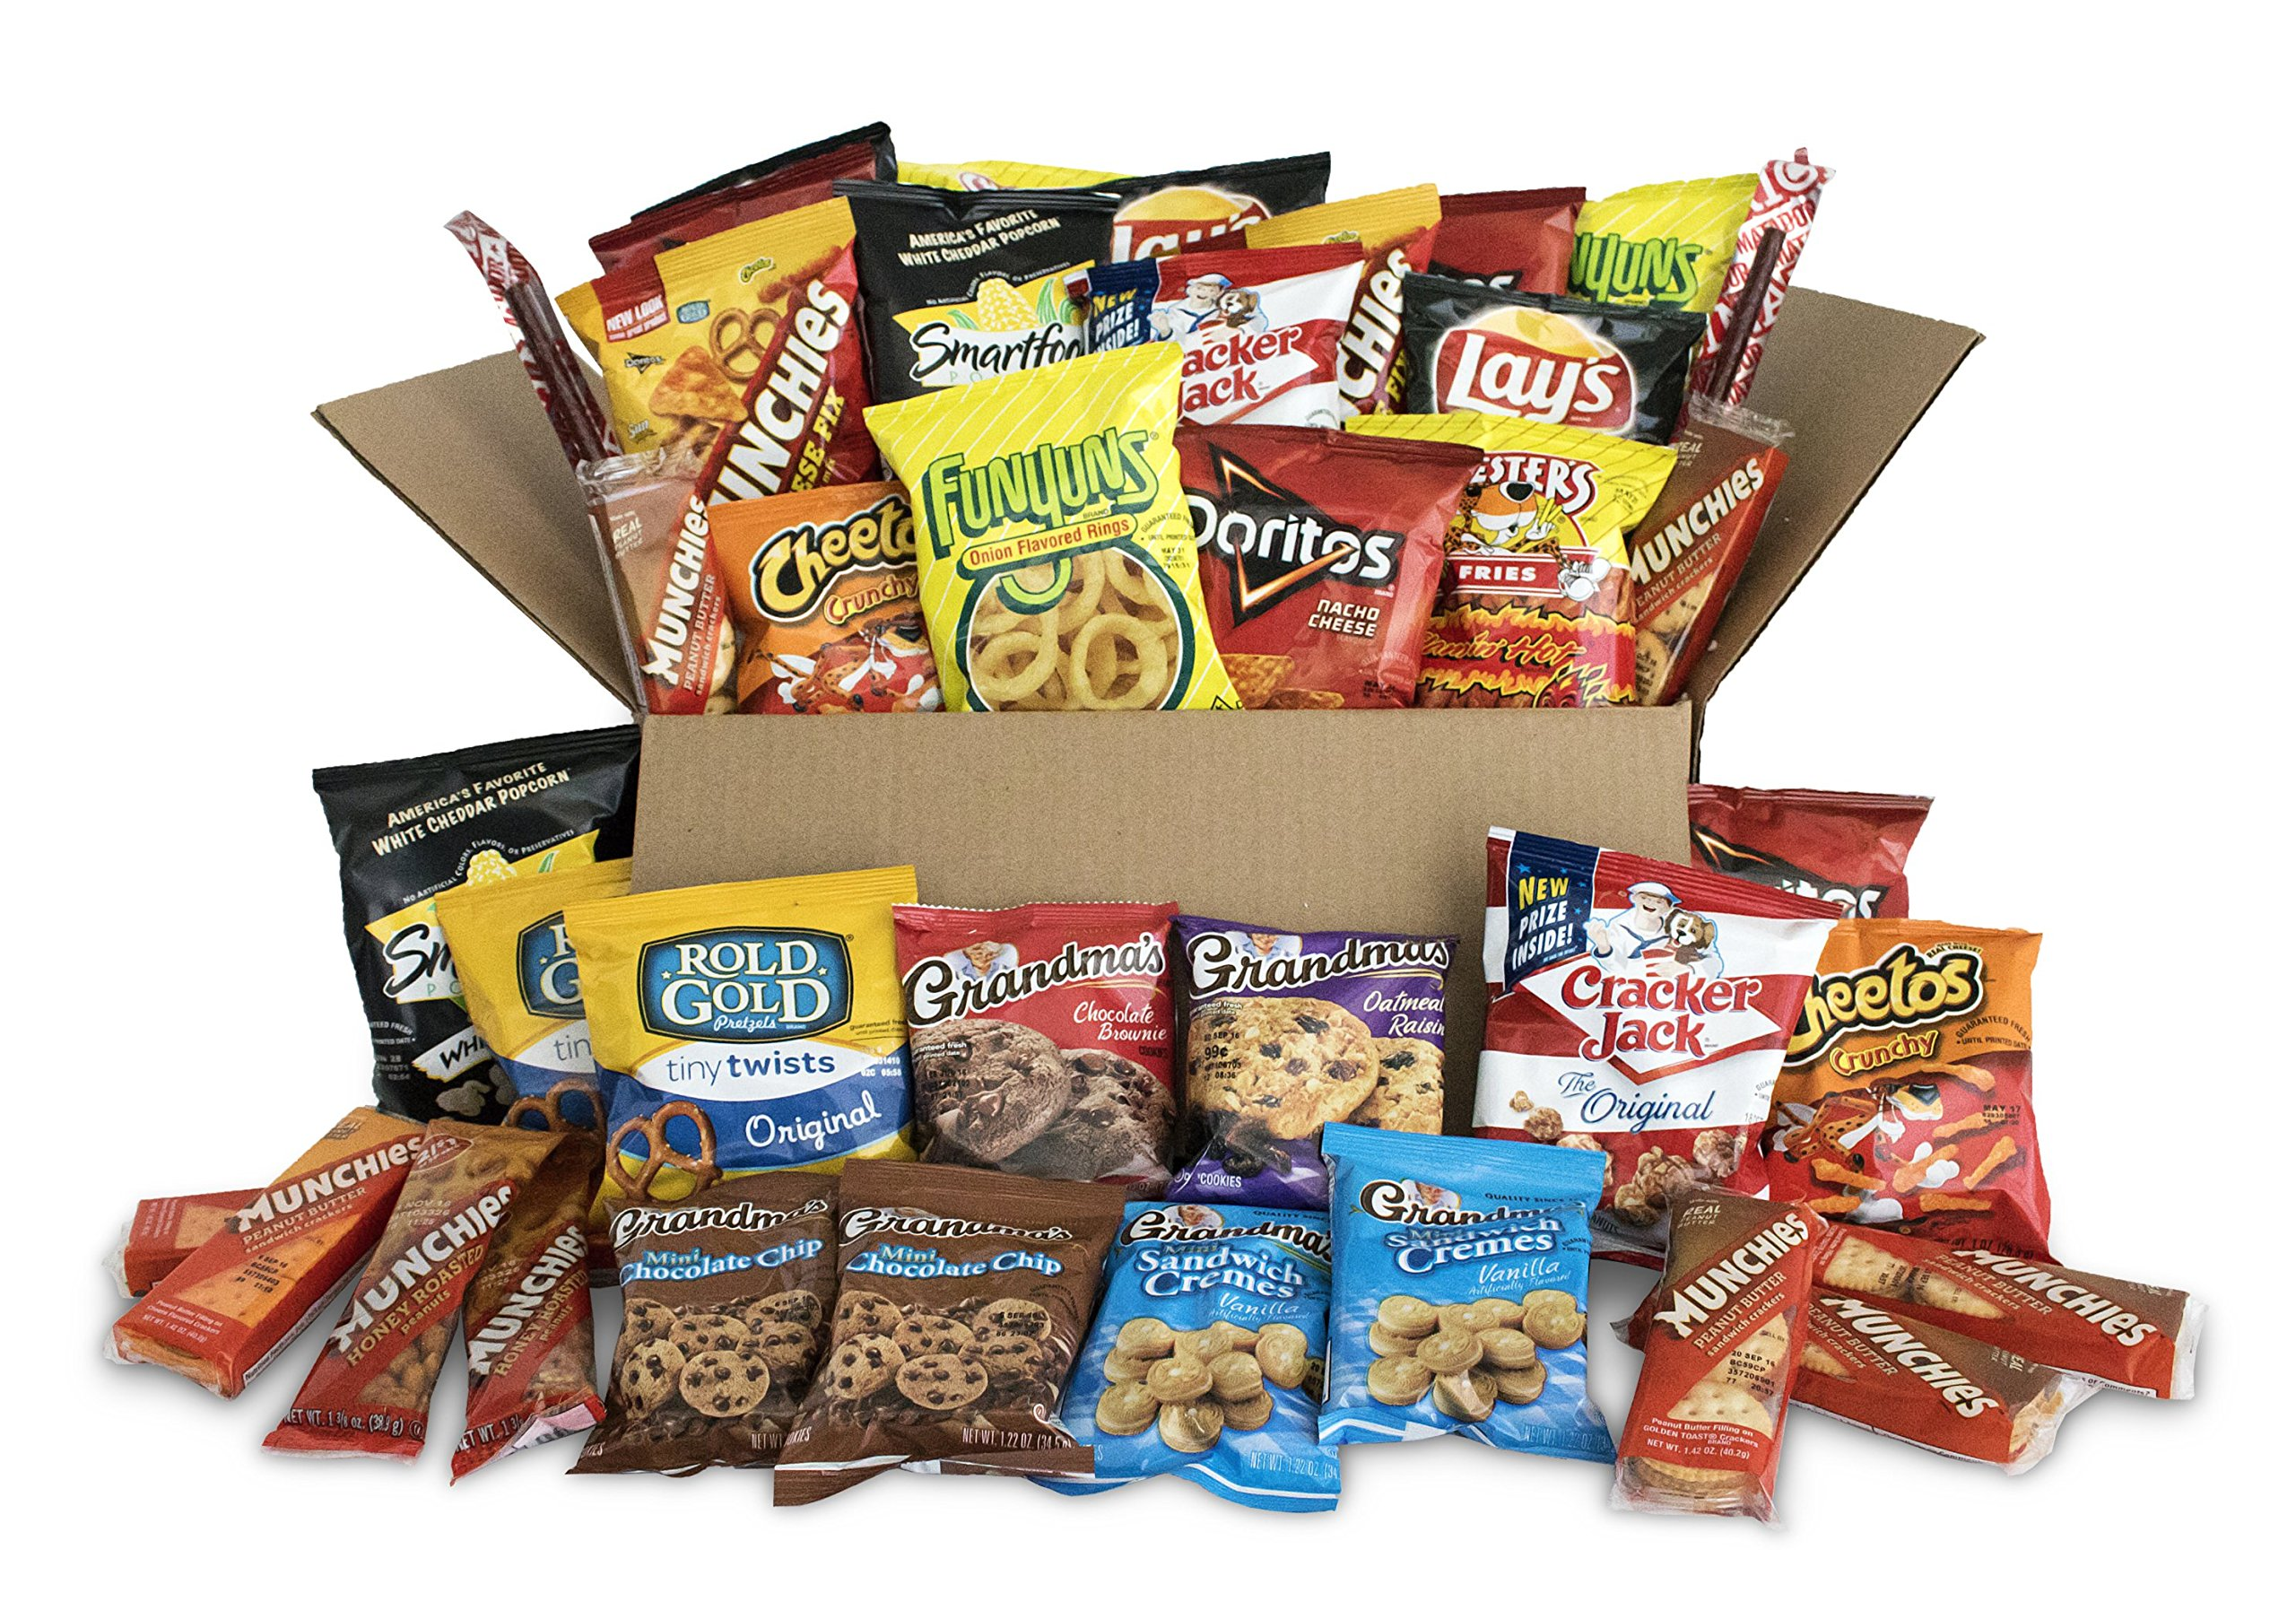 Ultimate Snack Care Package, Variety Assortment of Chips, Cookies, Crackers & More, 40 Count by Frito Lay (Image #1)